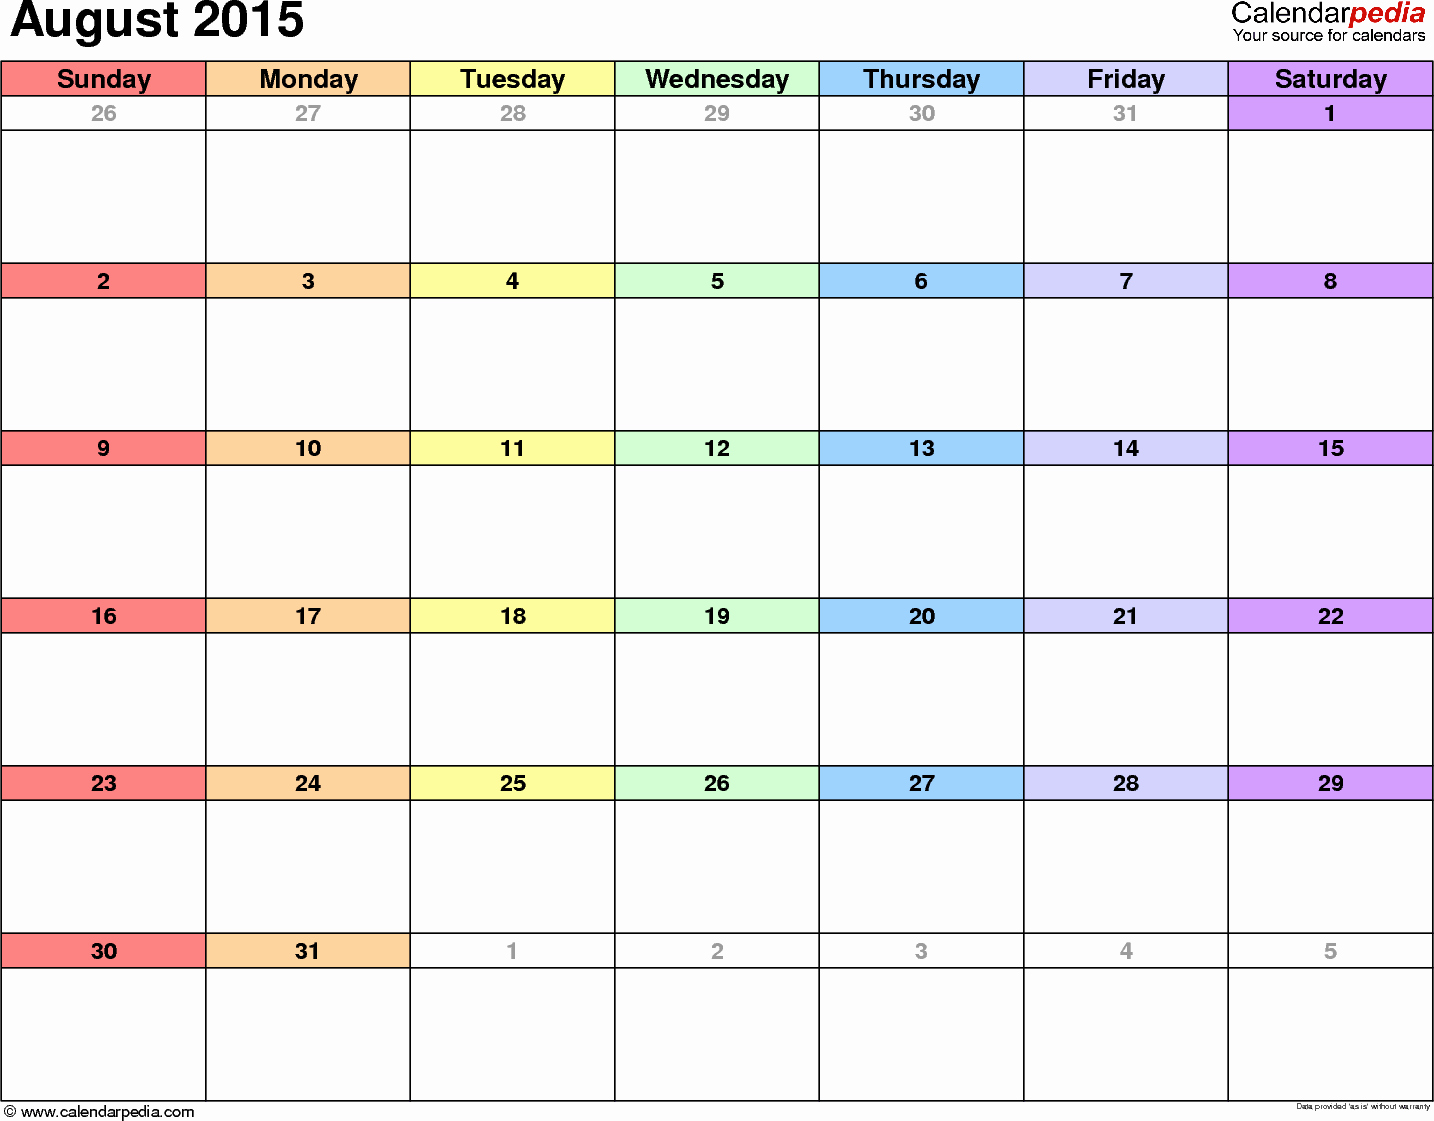 Free Calendar Templates August 2015 Luxury August 2015 Calendars for Word Excel & Pdf